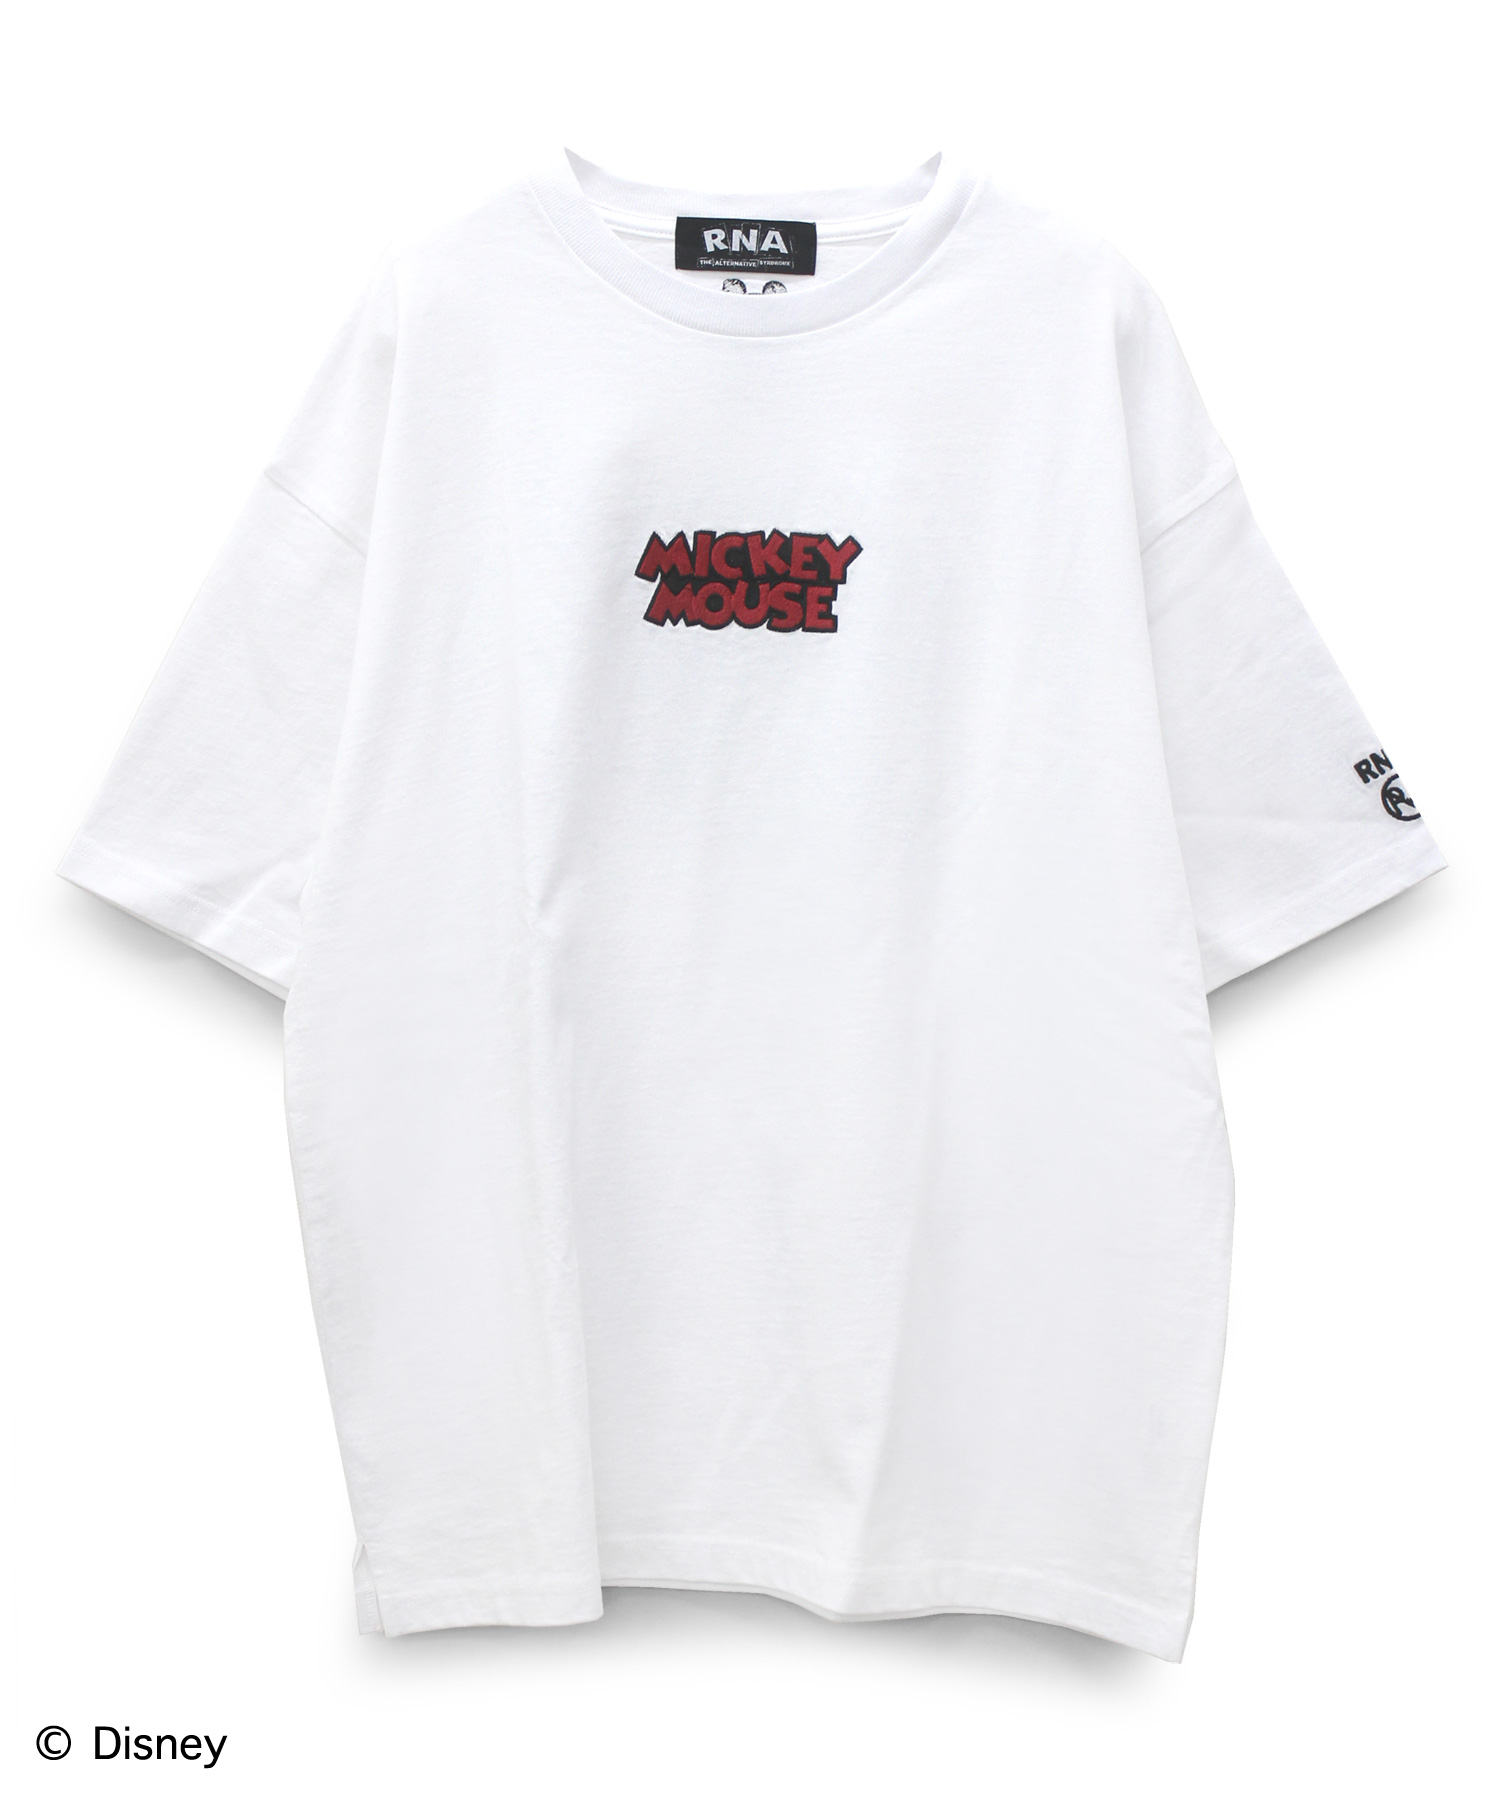 M1012 MICKEY MOUSE/ロゴBIG-Tシャツ